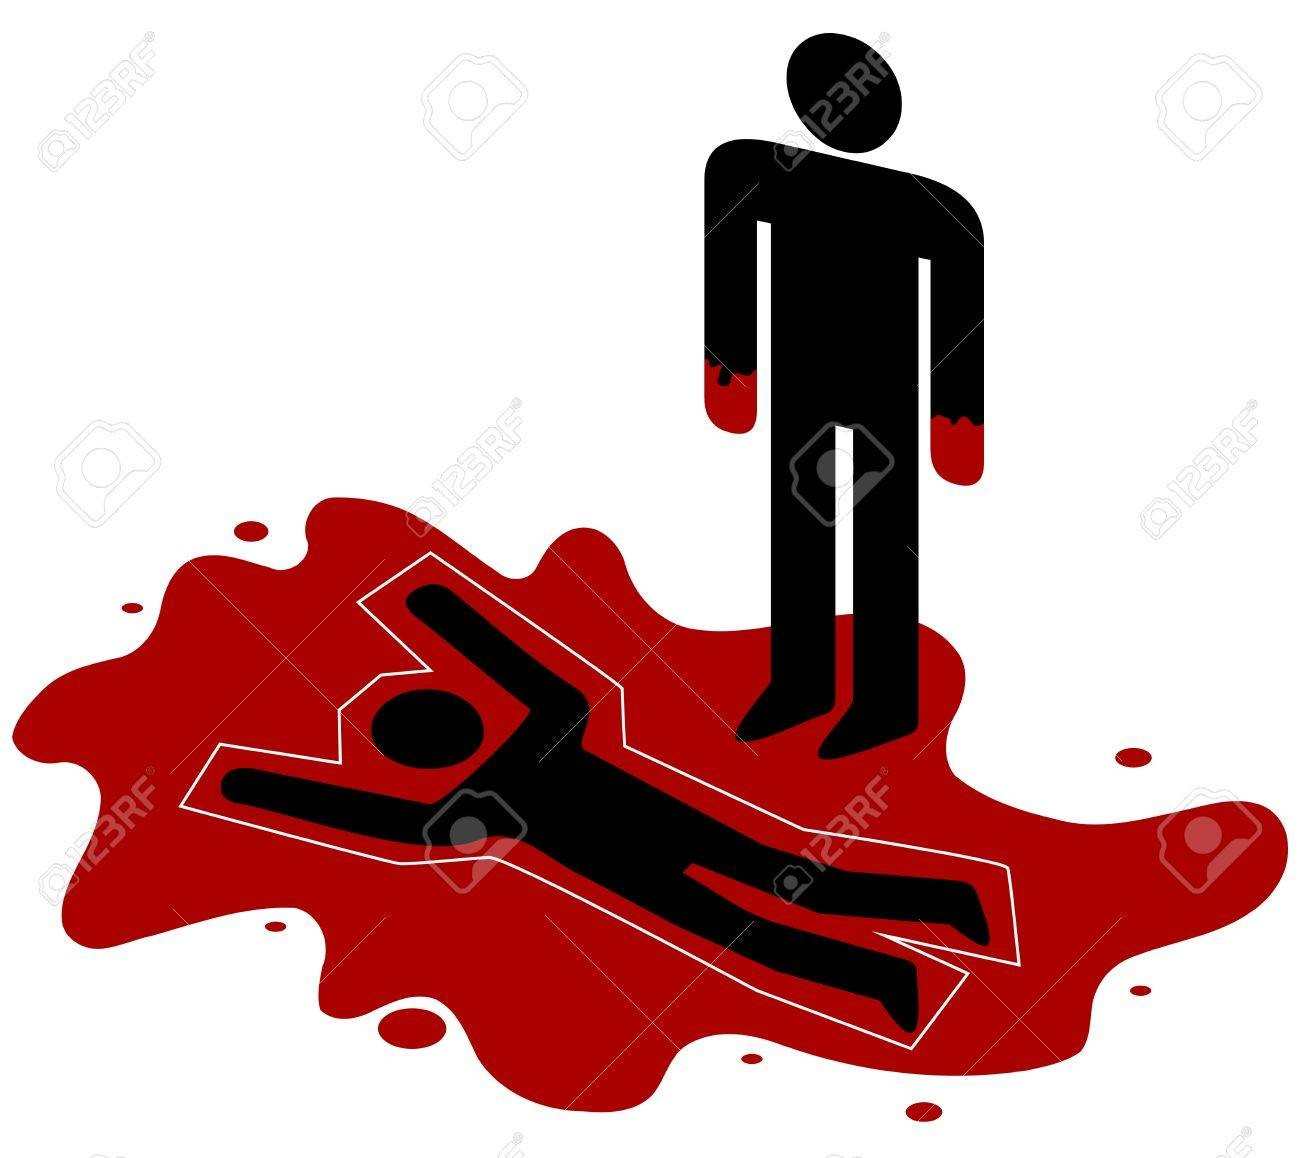 Dead body clipart 2 » Clipart Station.